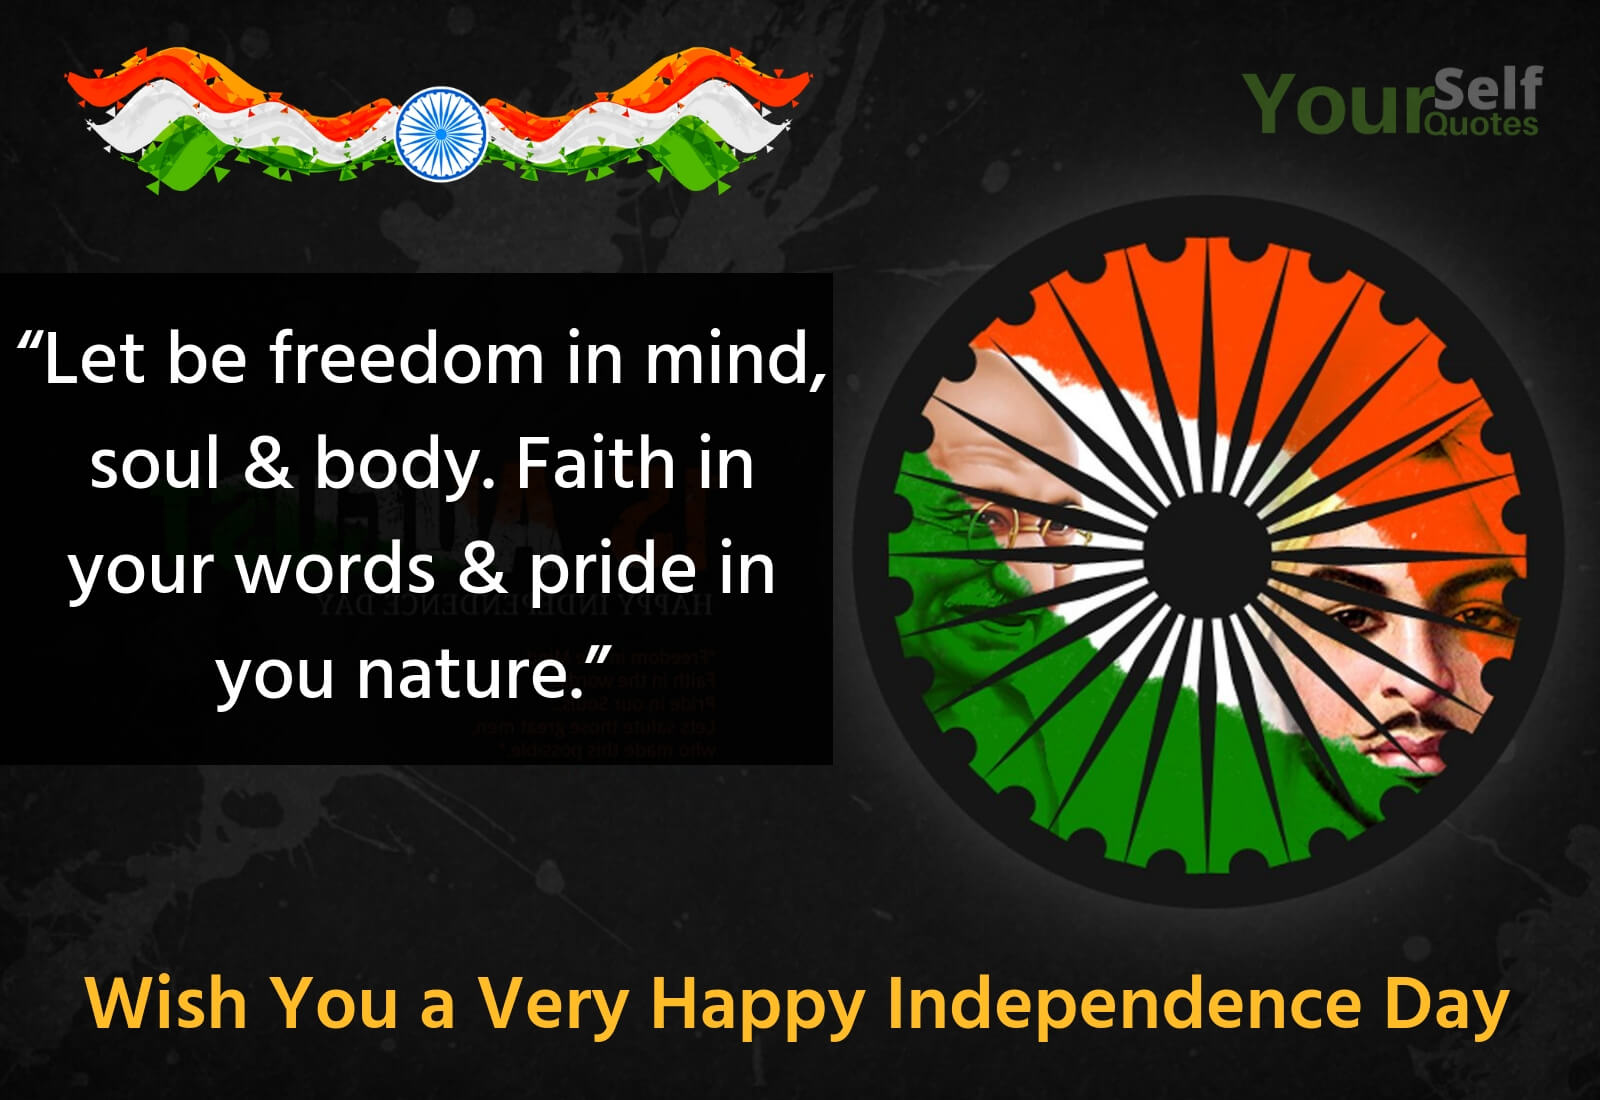 8th Independence Day Quotes Wishes With Images [8th August]